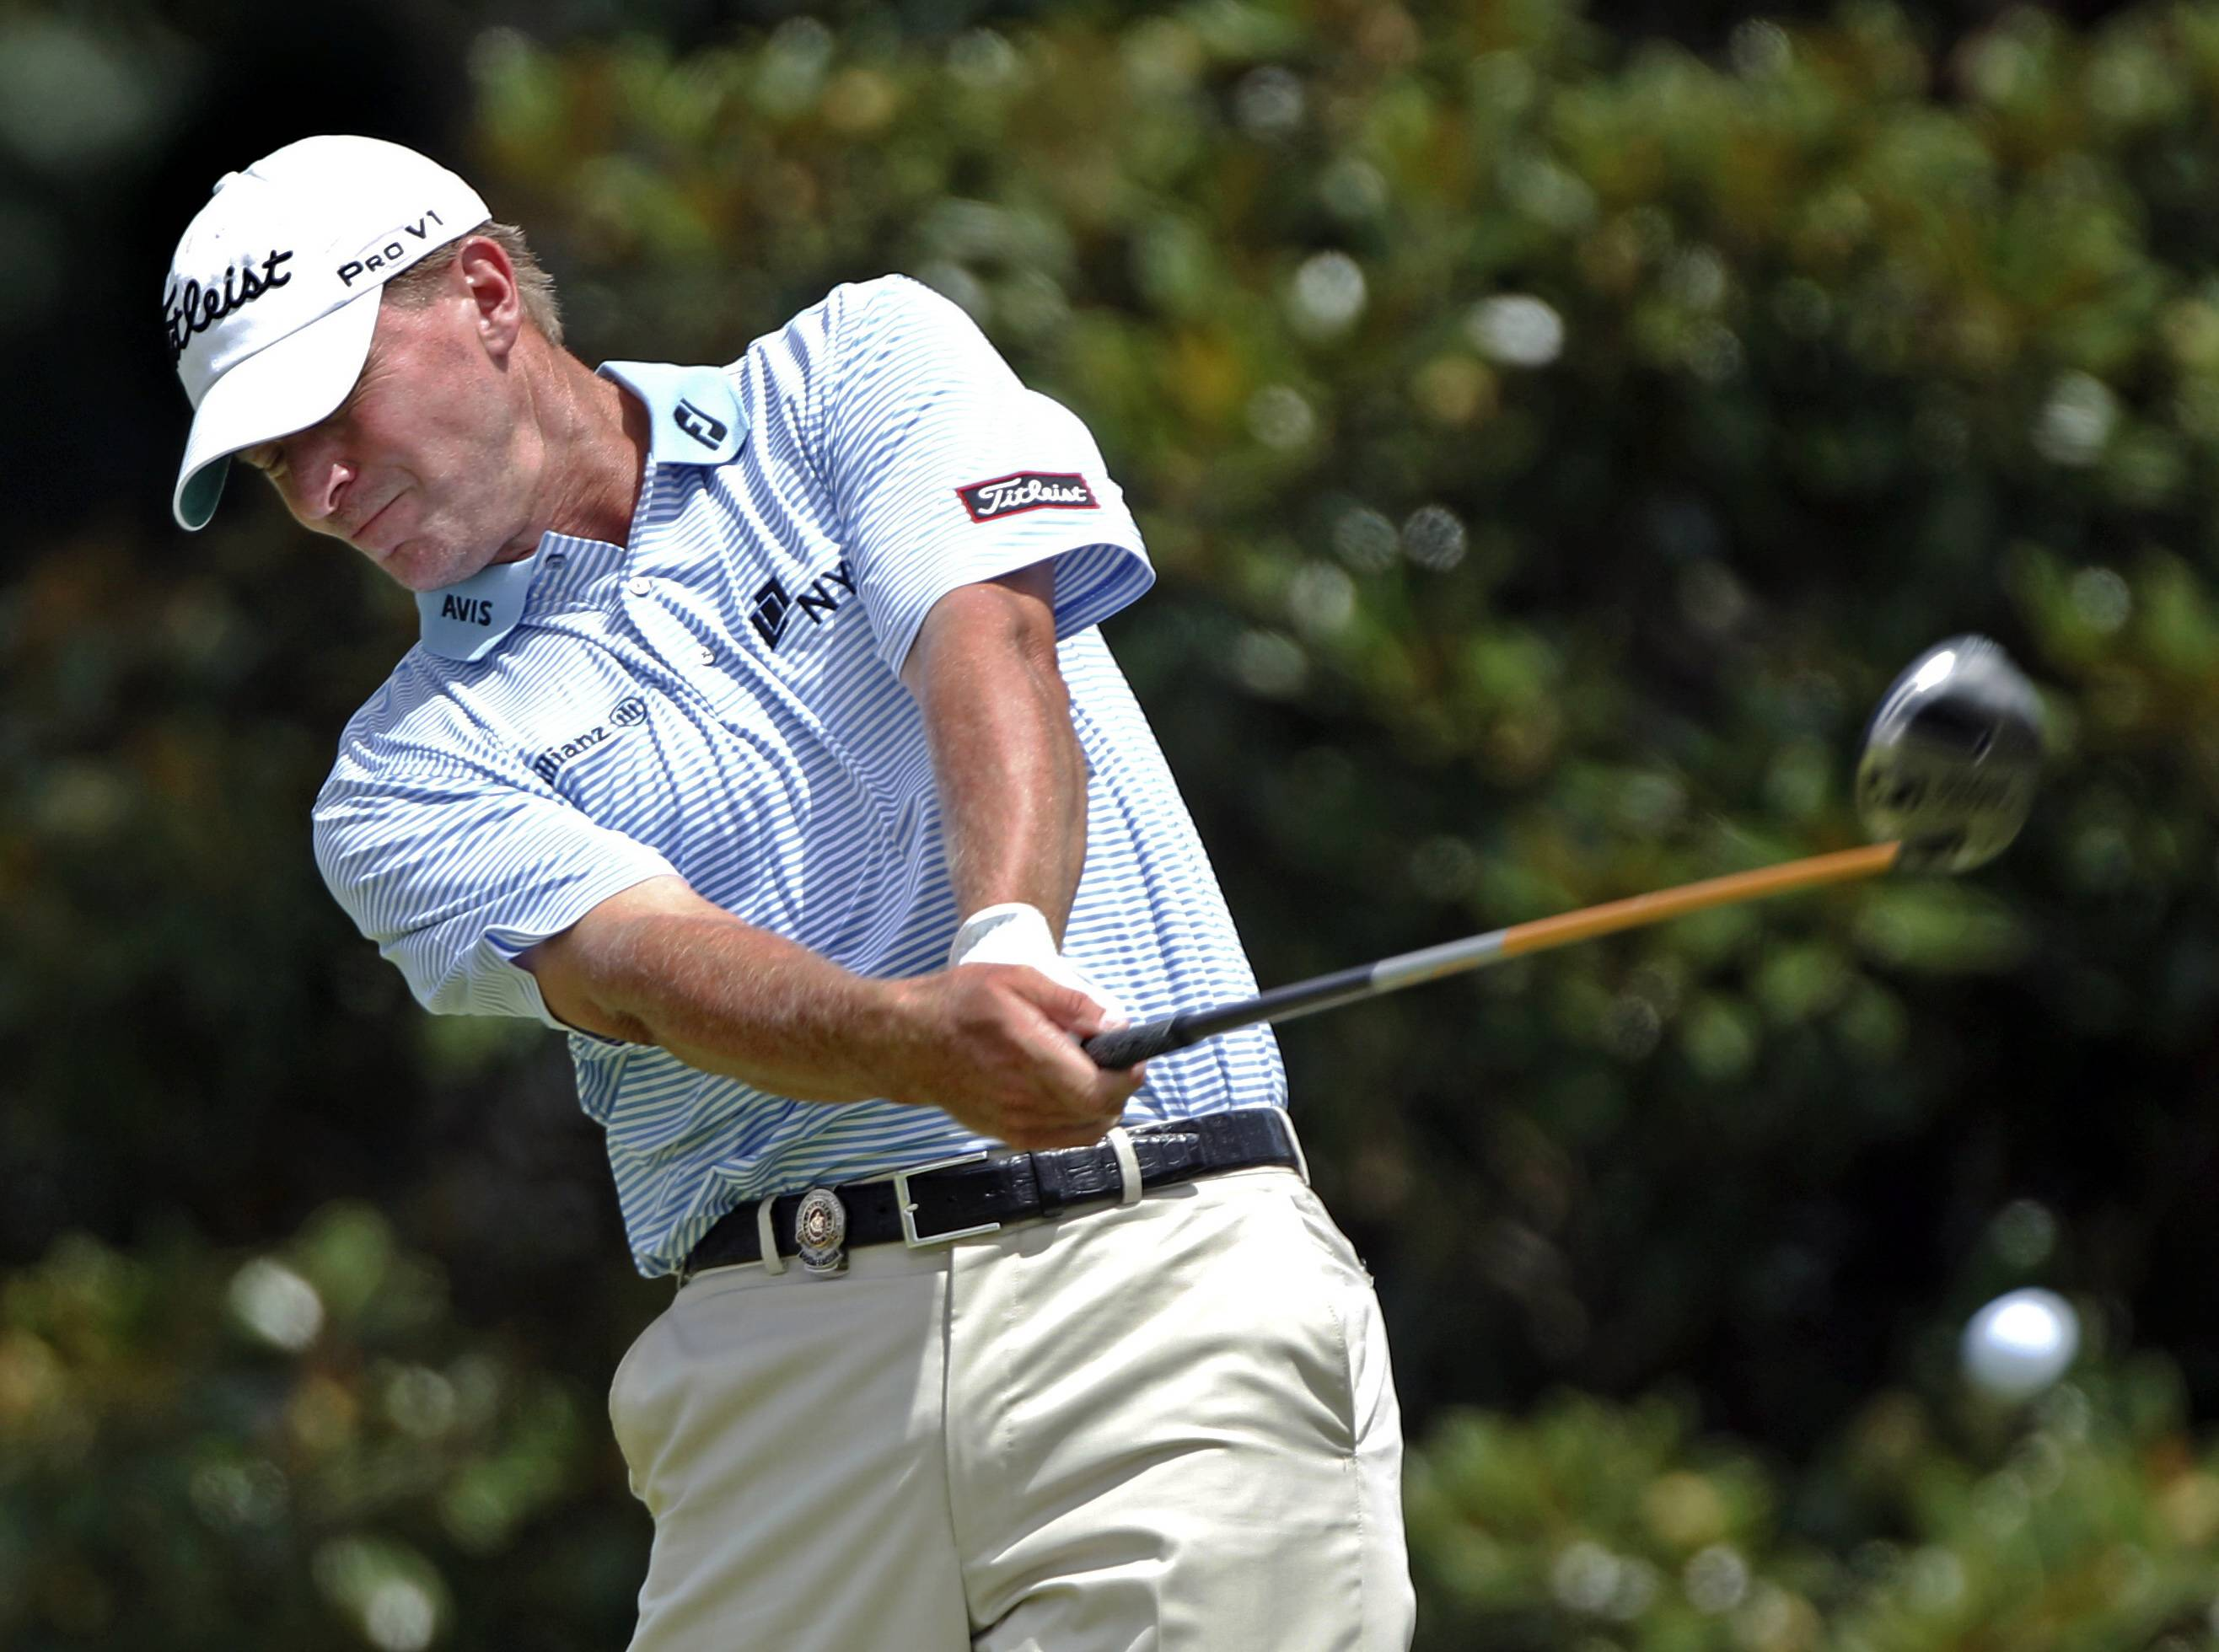 Steve Stricker shot a 63 Thursday during the first round of the PGA Championship at Atlanta Athletic Club.